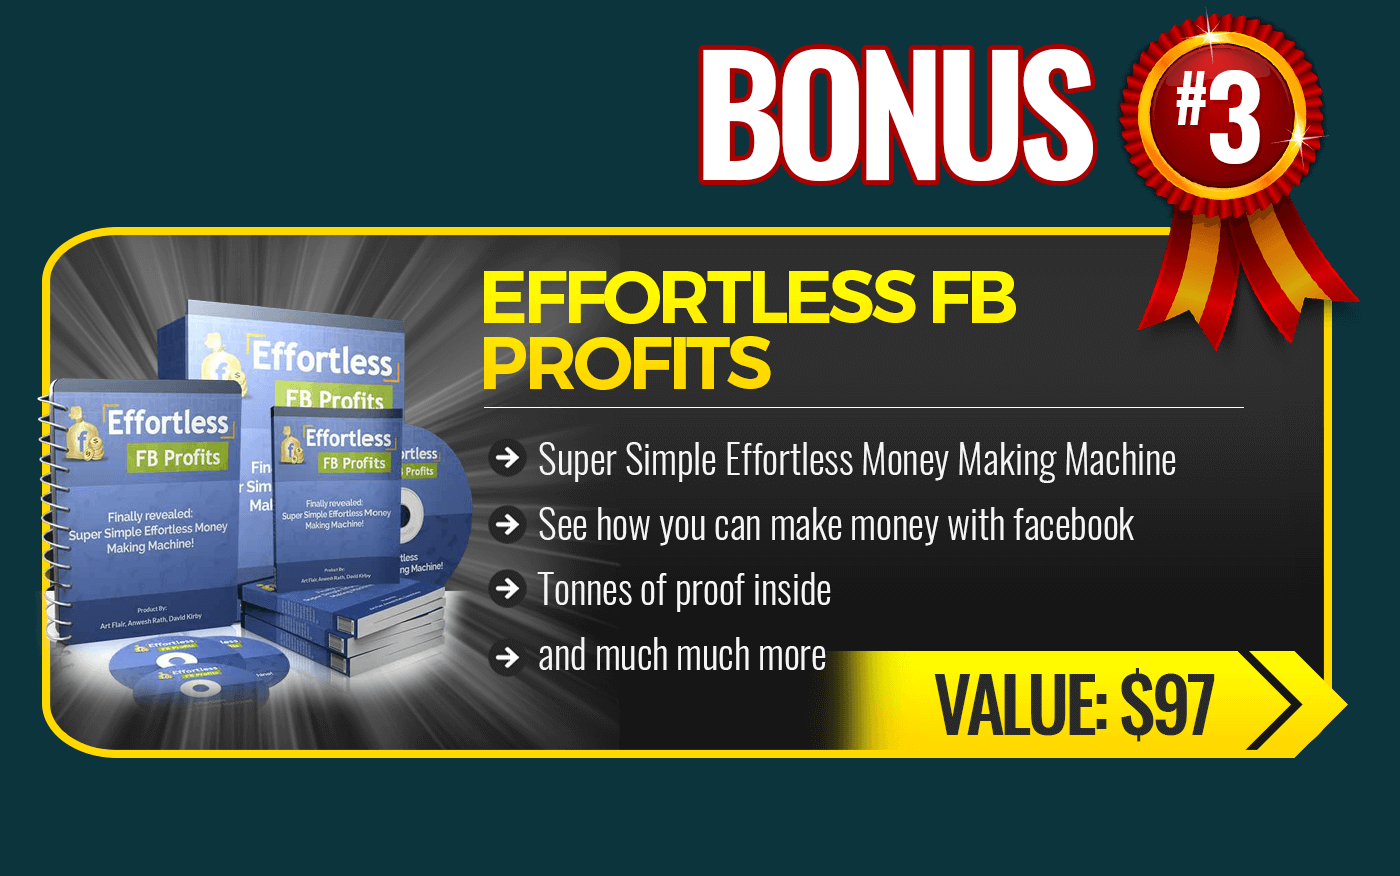 3. Effortless FB Profits